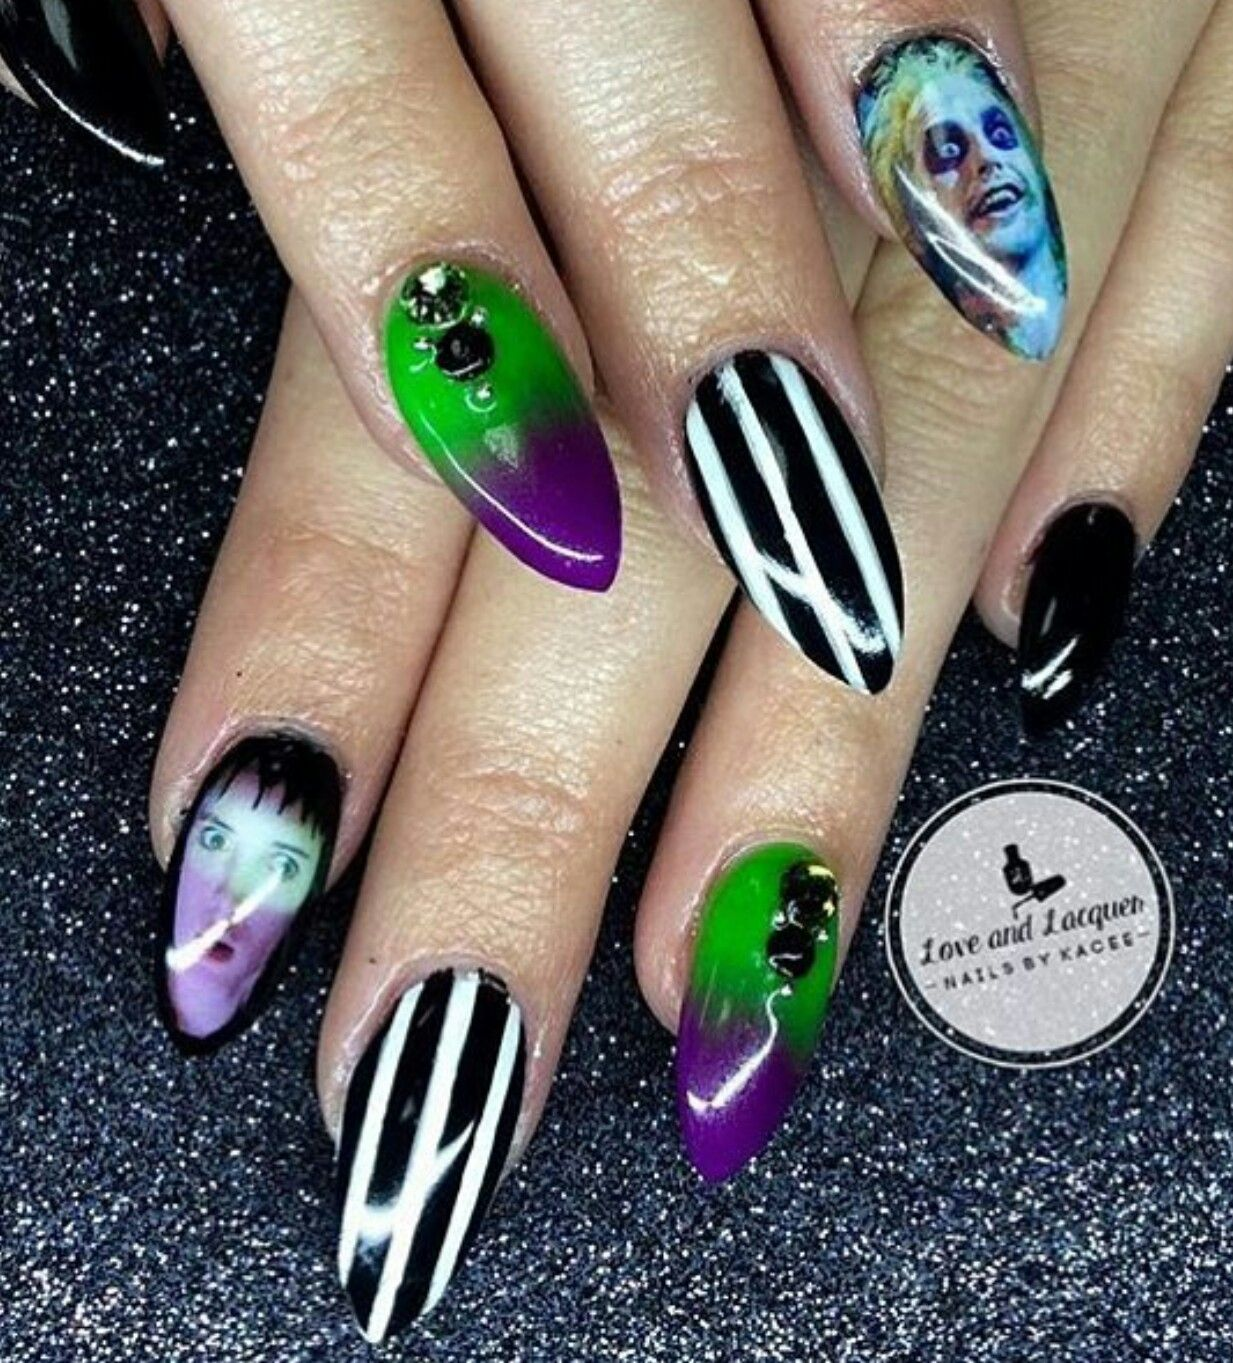 Pin by Heatherlee Willis on Halloween/Day of the Dead Nails ...